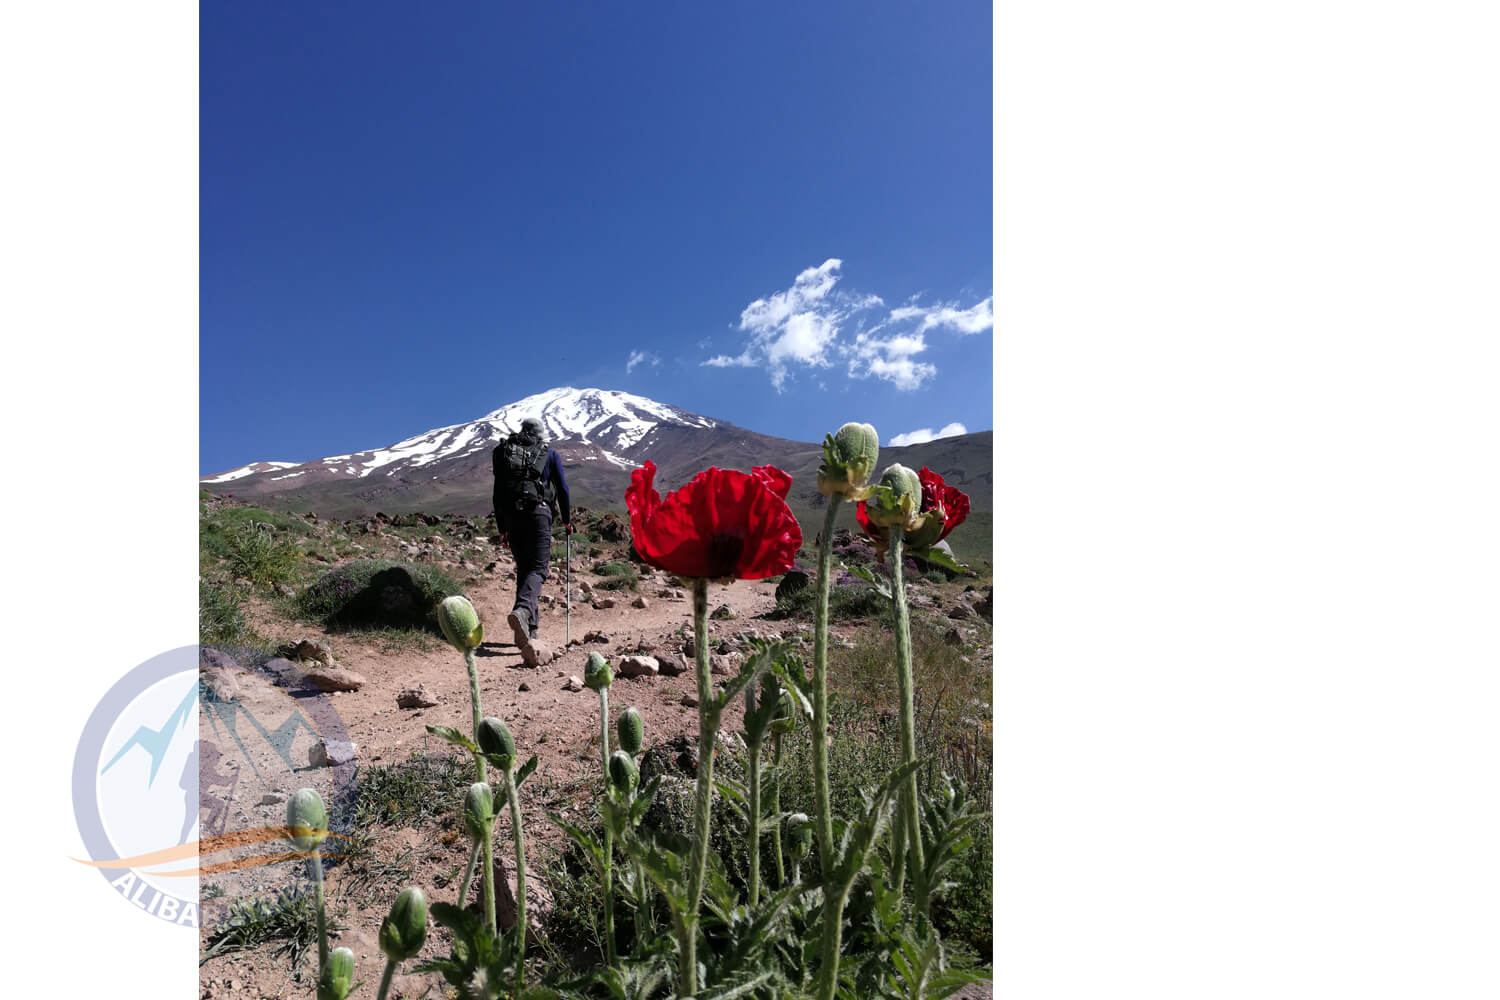 Alibabatrek damavand tour alamkuh trekking tour iran mountains tour damavand summit